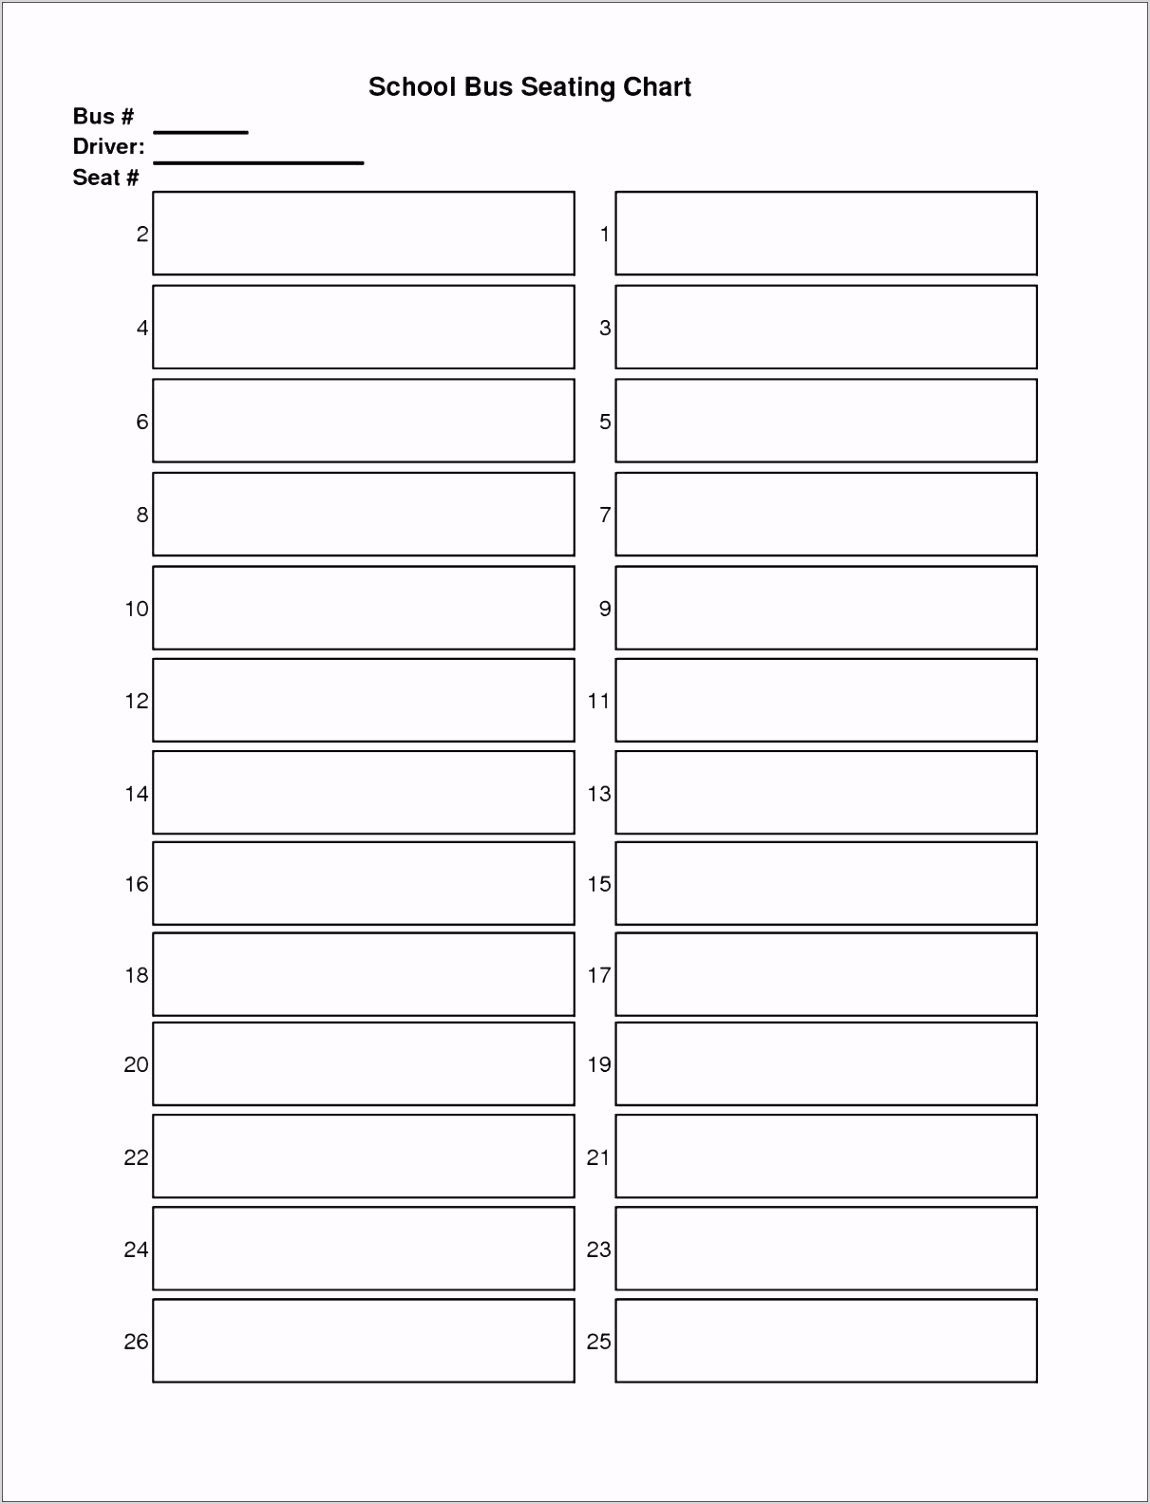 Free Restaurant Seating Chart Template 72085 Vjv8d 28 Free Restaurant Seating Chart Template In 2020 with Ssg@[o H G T E N B E B T D A S D F G H J K L O I U Y T R M N W C G T Y U X Z C C X Z A S Q W D D A J H H U I K J T U F I E F D W H I O C P L O K I U J M N H Y T R F V C D E W S X Z A Q S Z X C V B N M N B V C C X Z A Q W E E D C V T